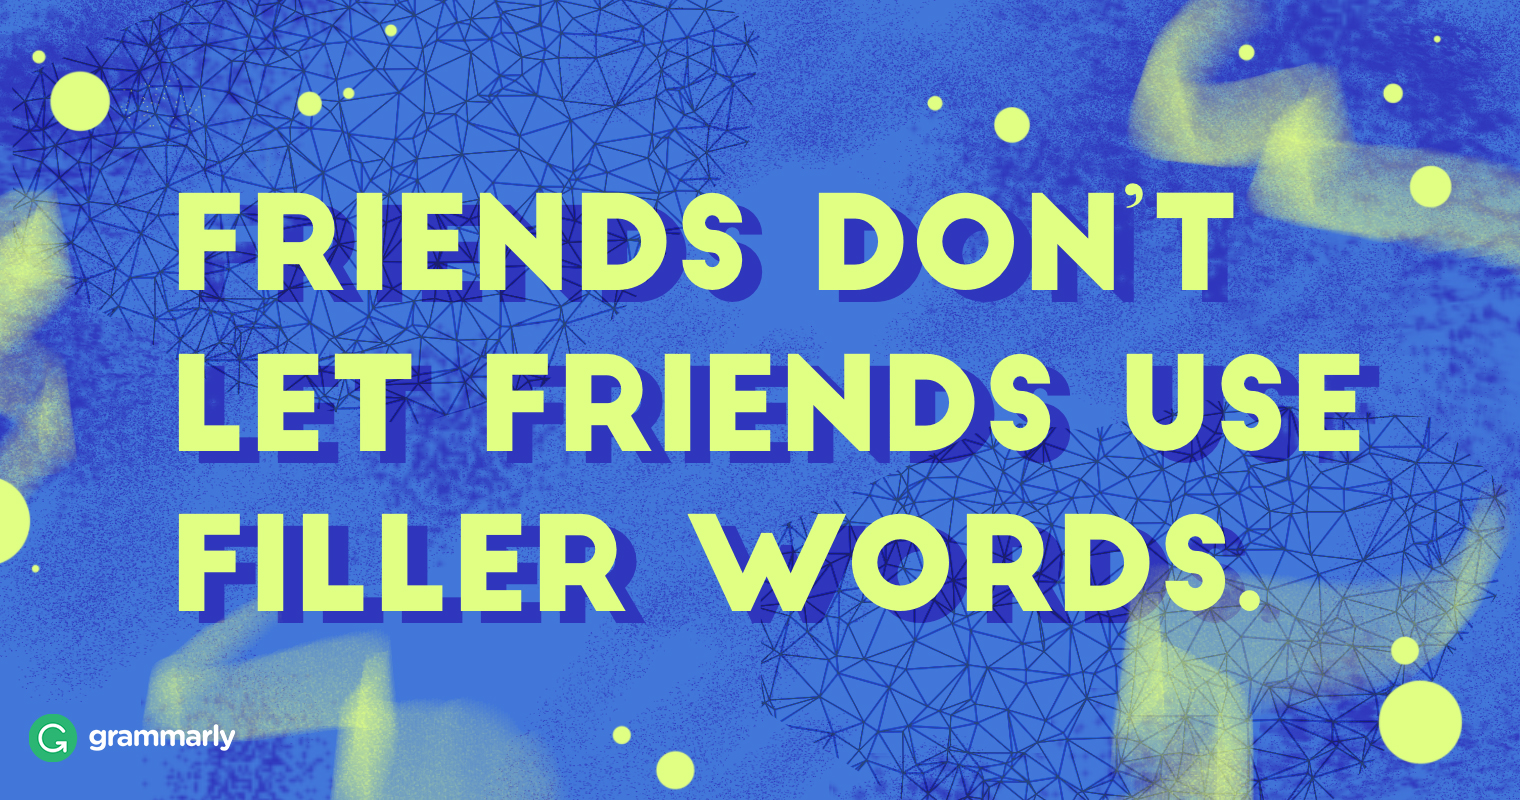 31 Words and Phrases You No Longer Need